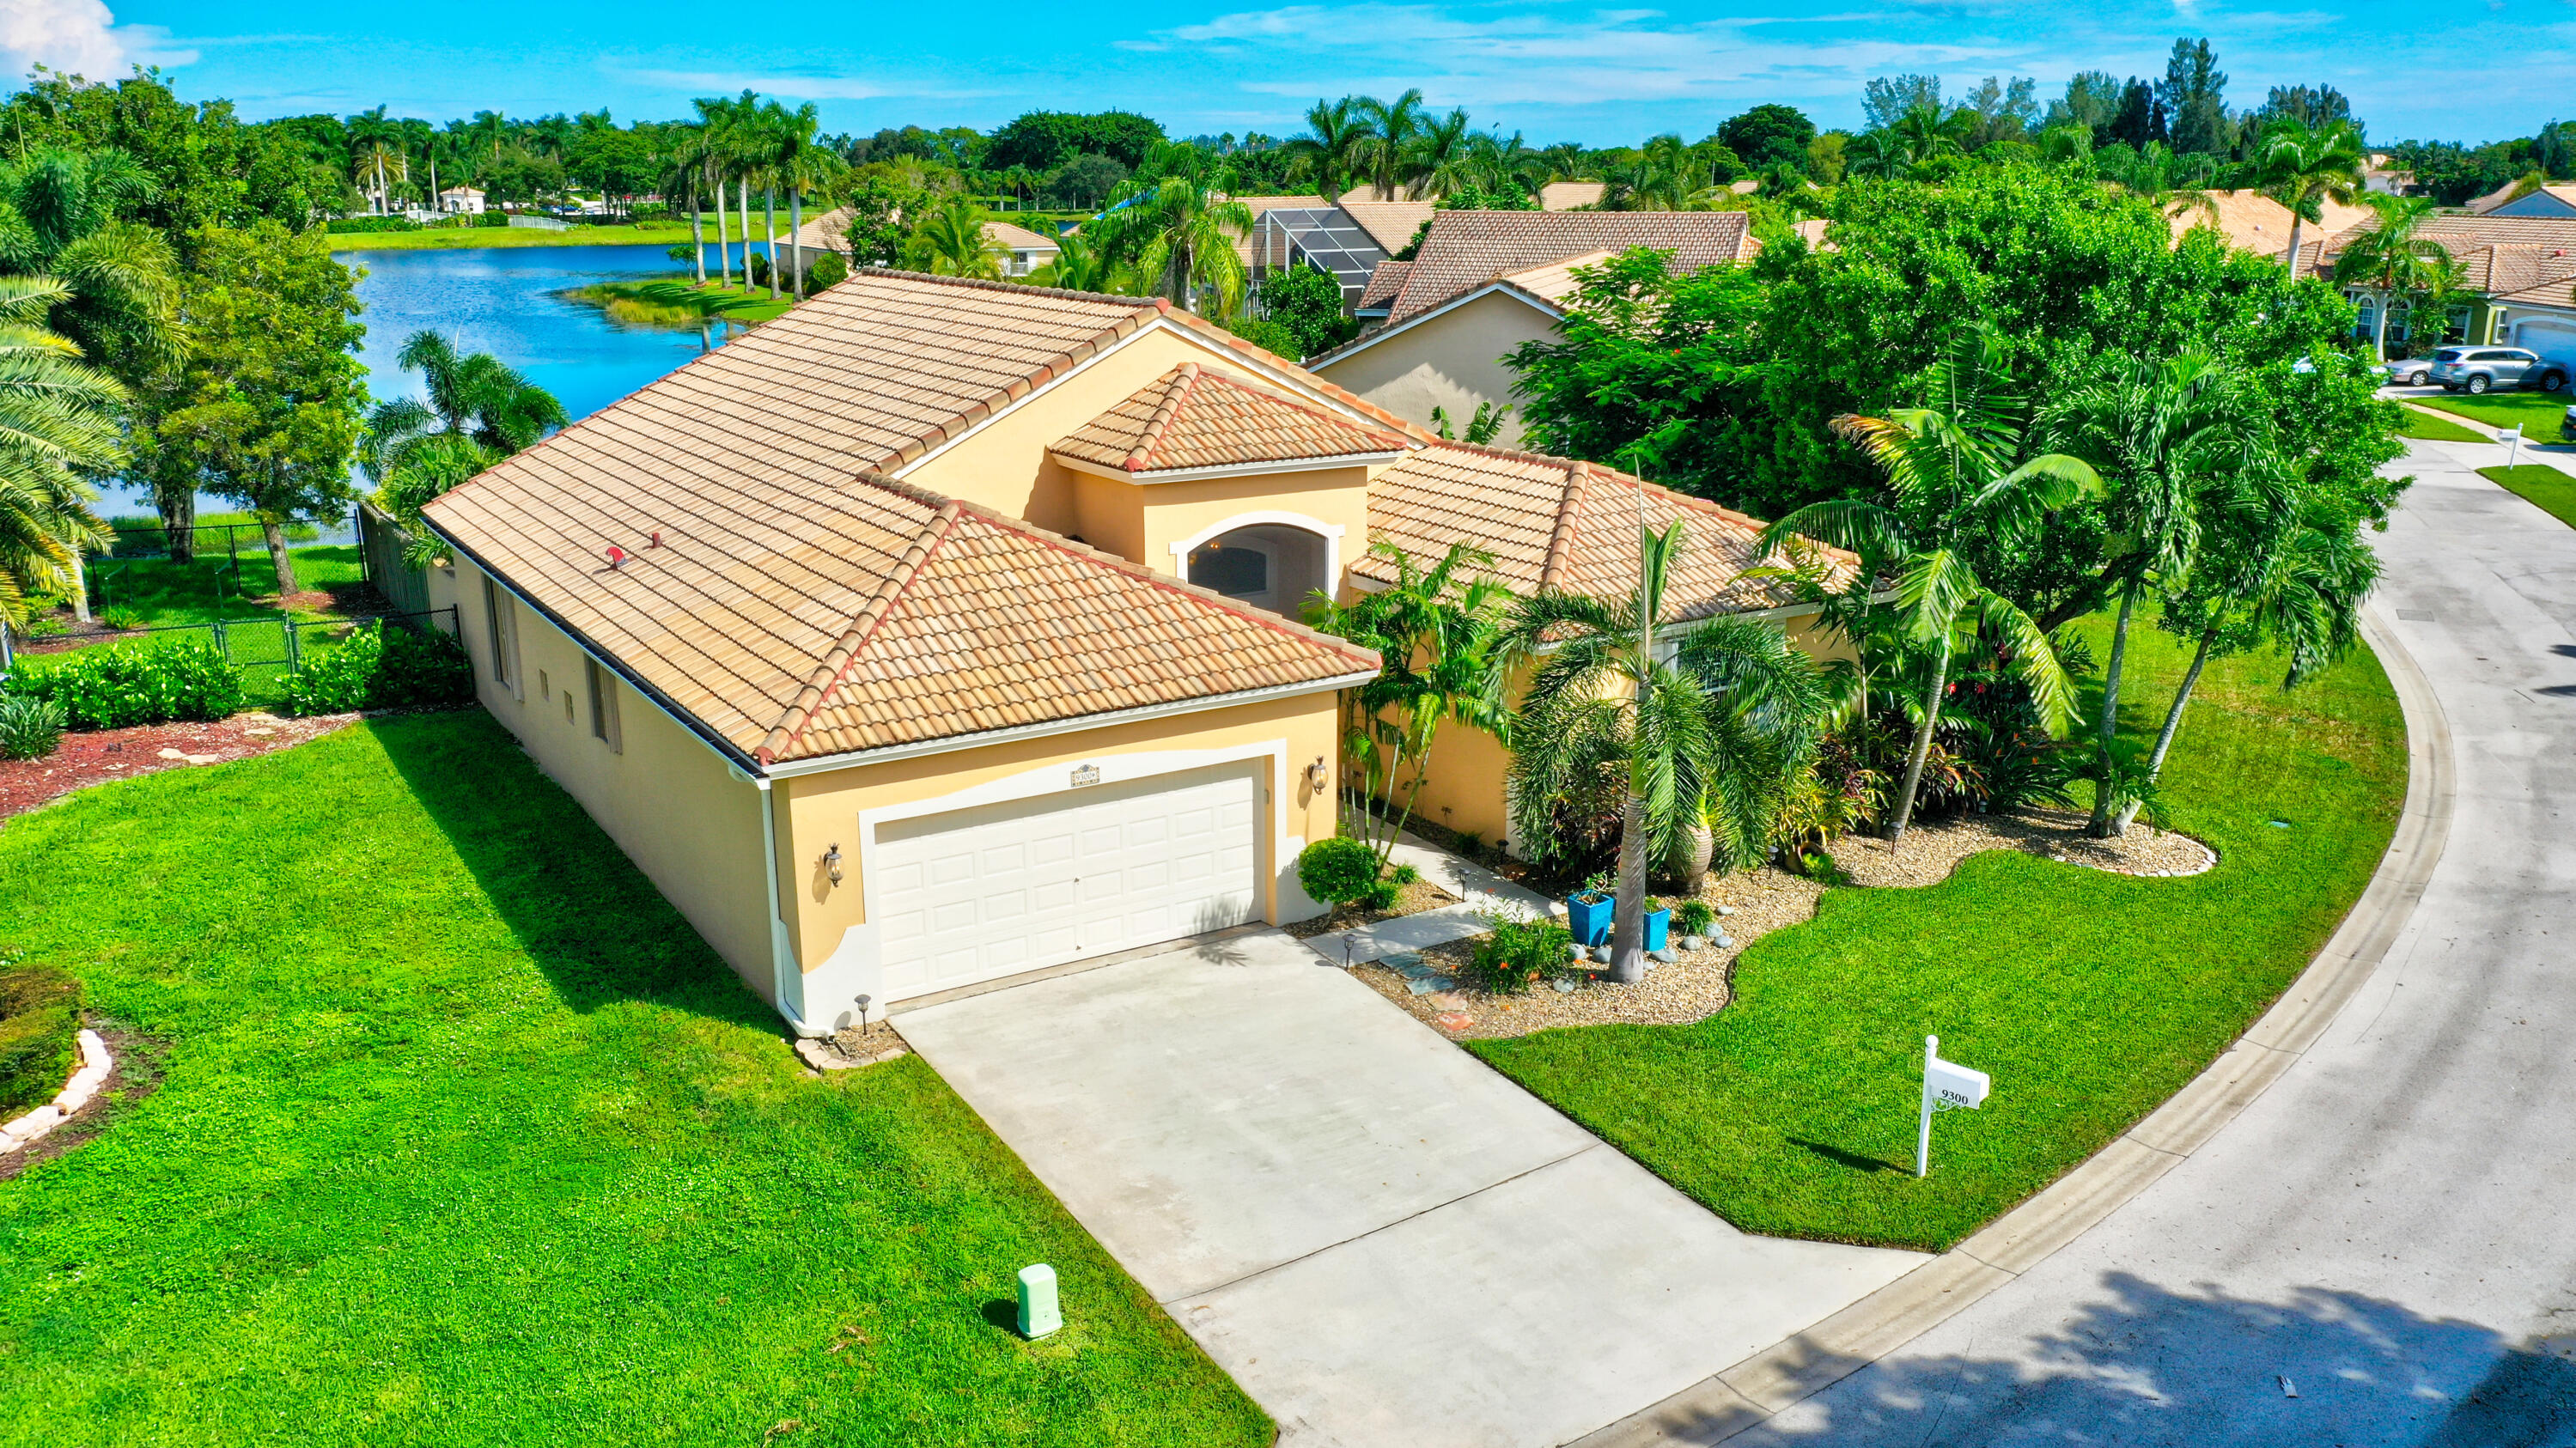 9300  Cove Point Circle  For Sale 10748540, FL